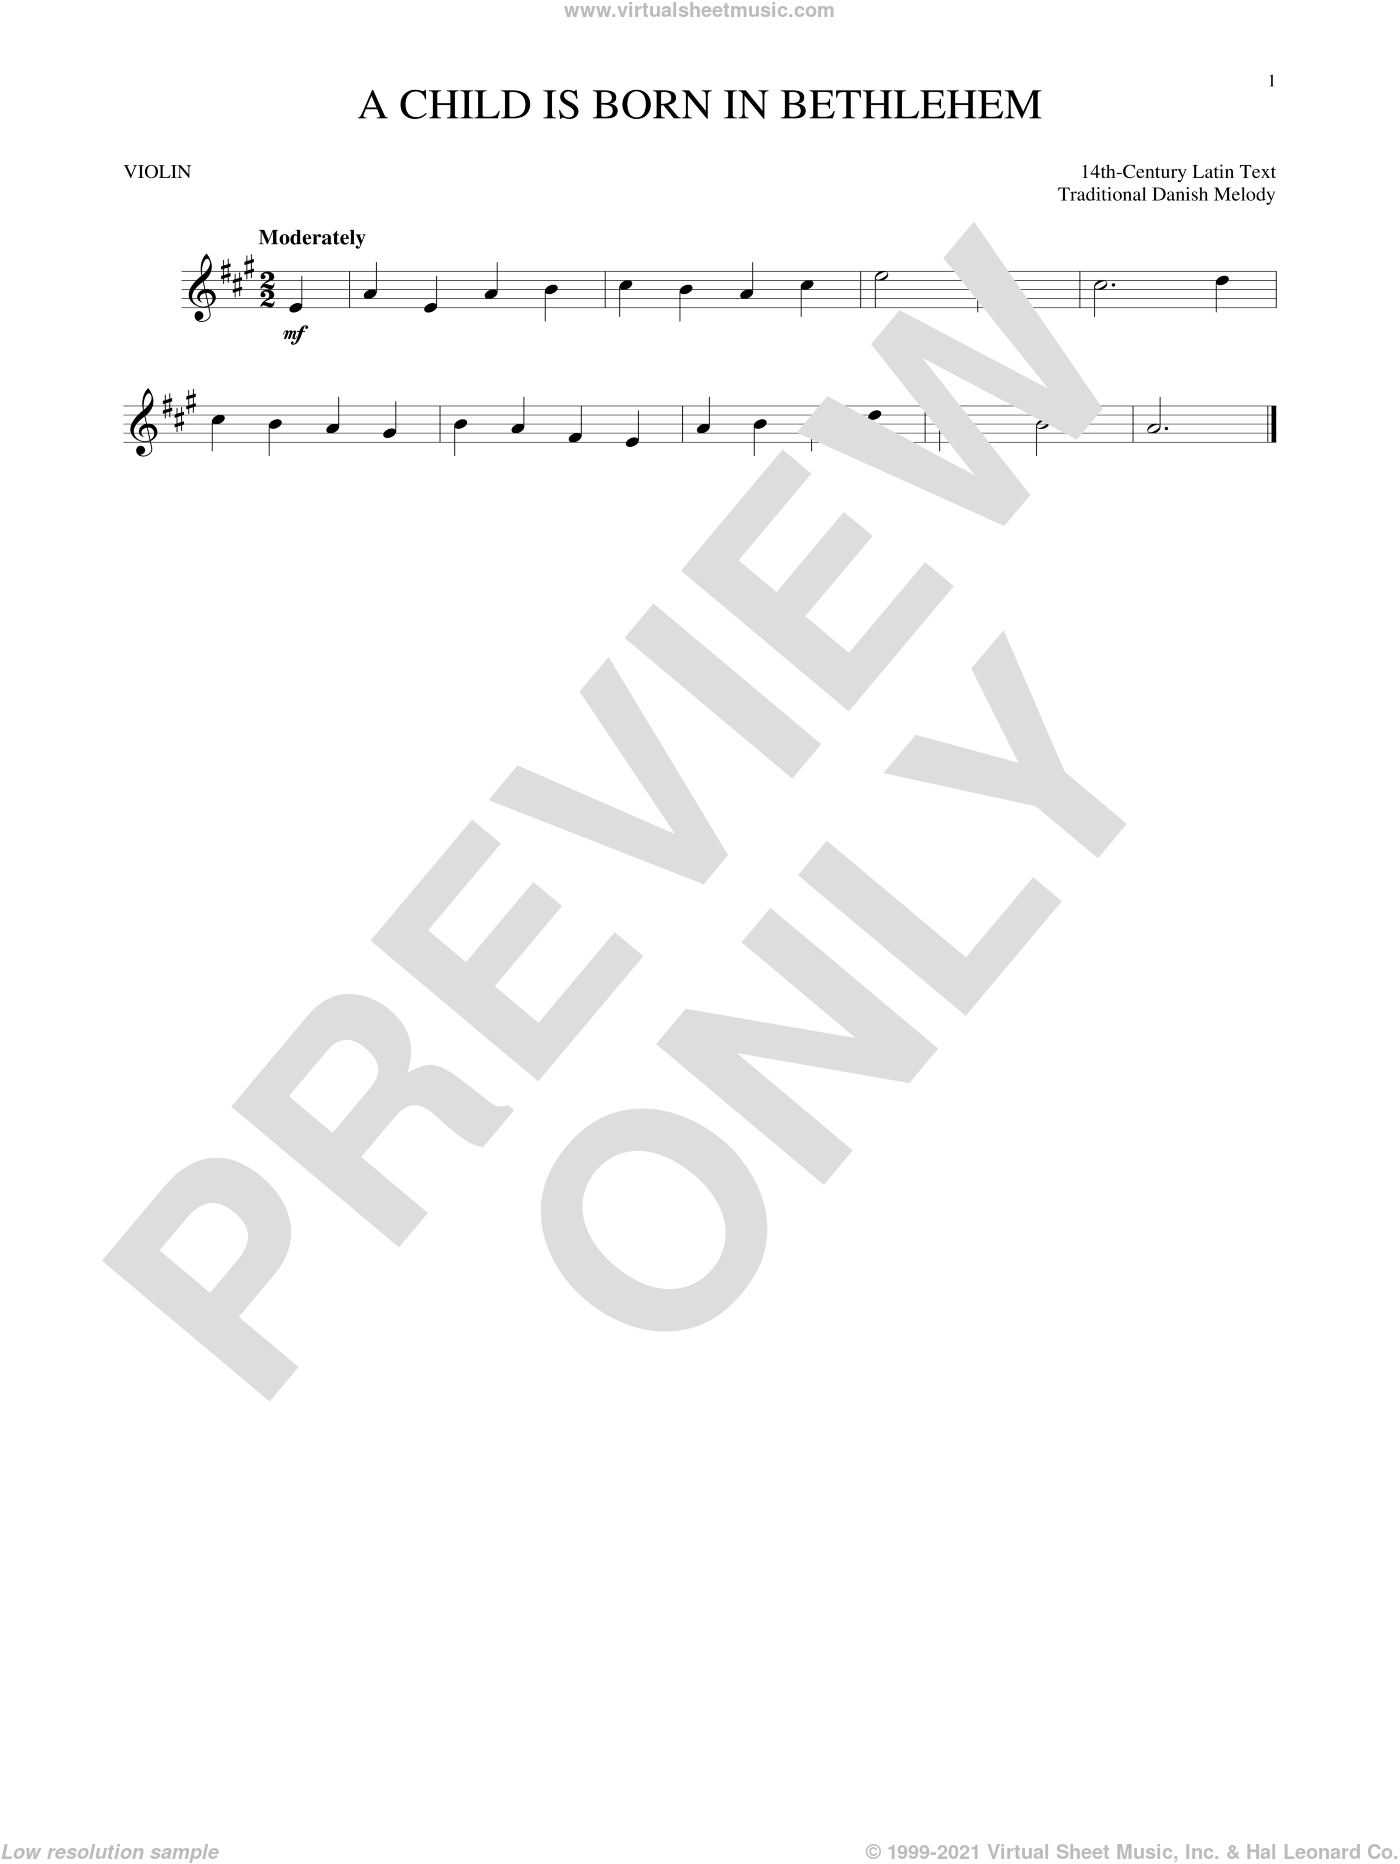 A Child Is Born In Bethlehem sheet music for violin solo by Nicolai F.S. Grundtvig and Traditional Danish Melody. Score Image Preview.